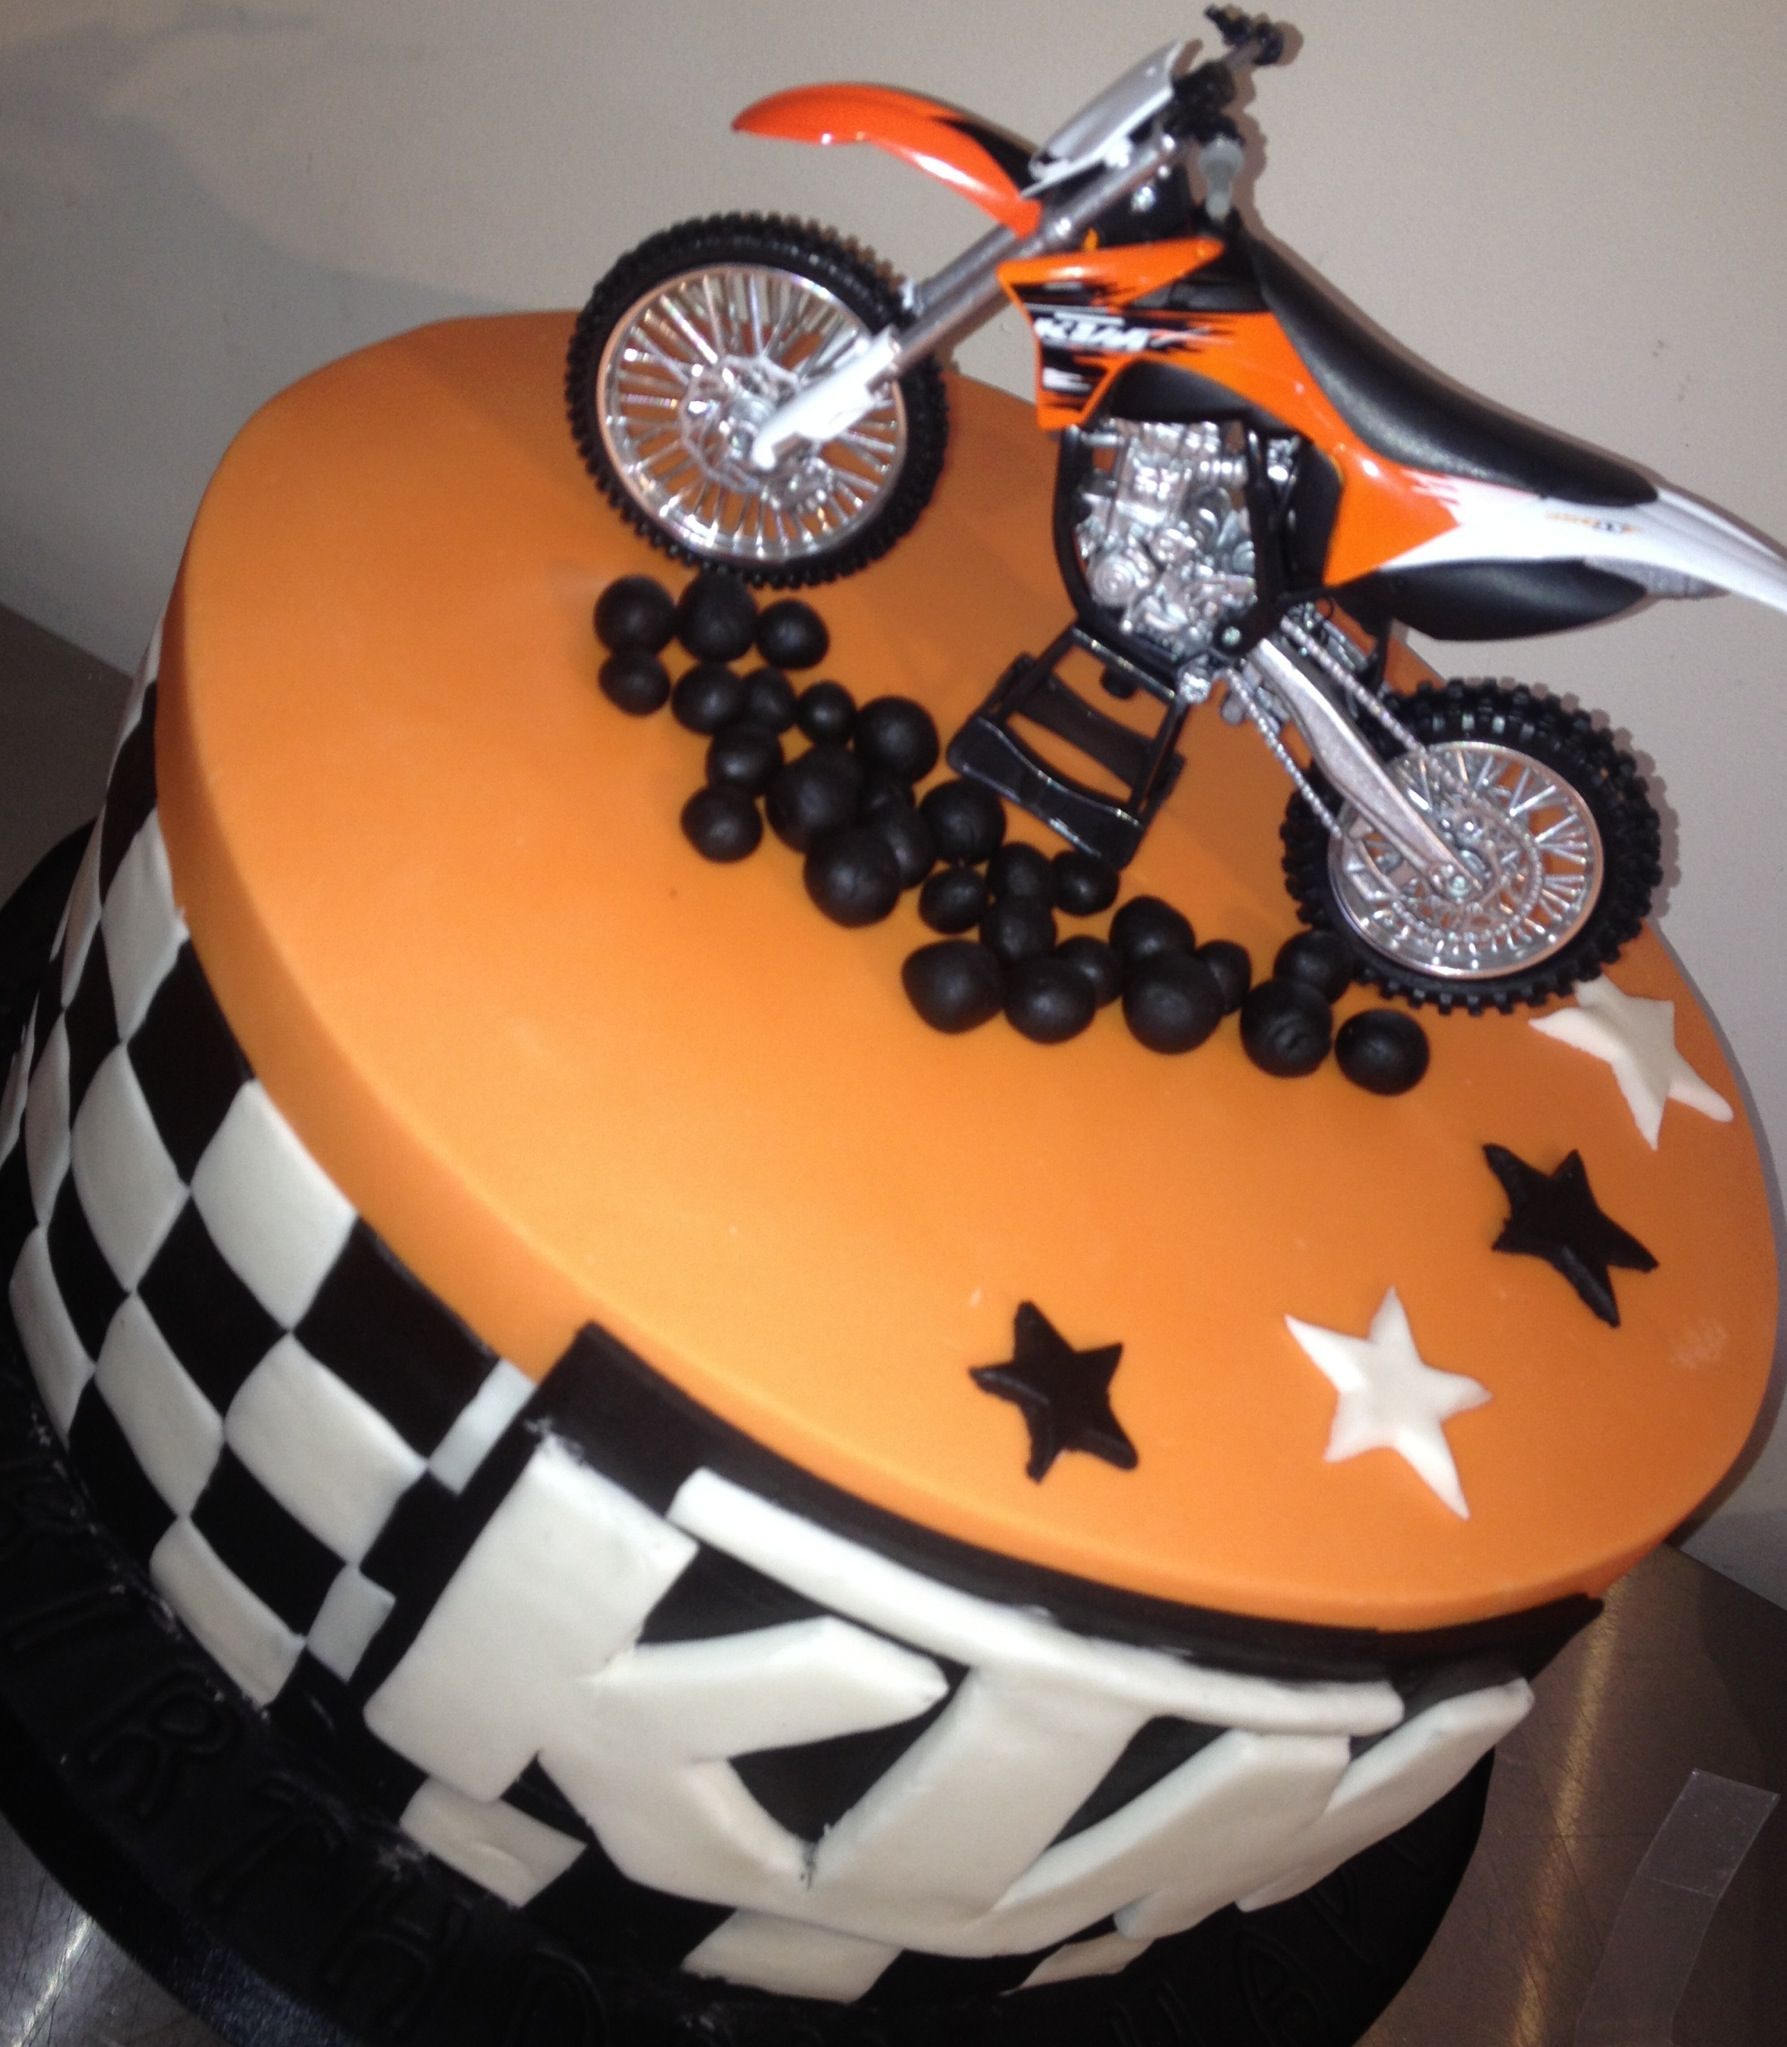 Fast and furious ktm birthday cake kids cakes for Decoration ktm